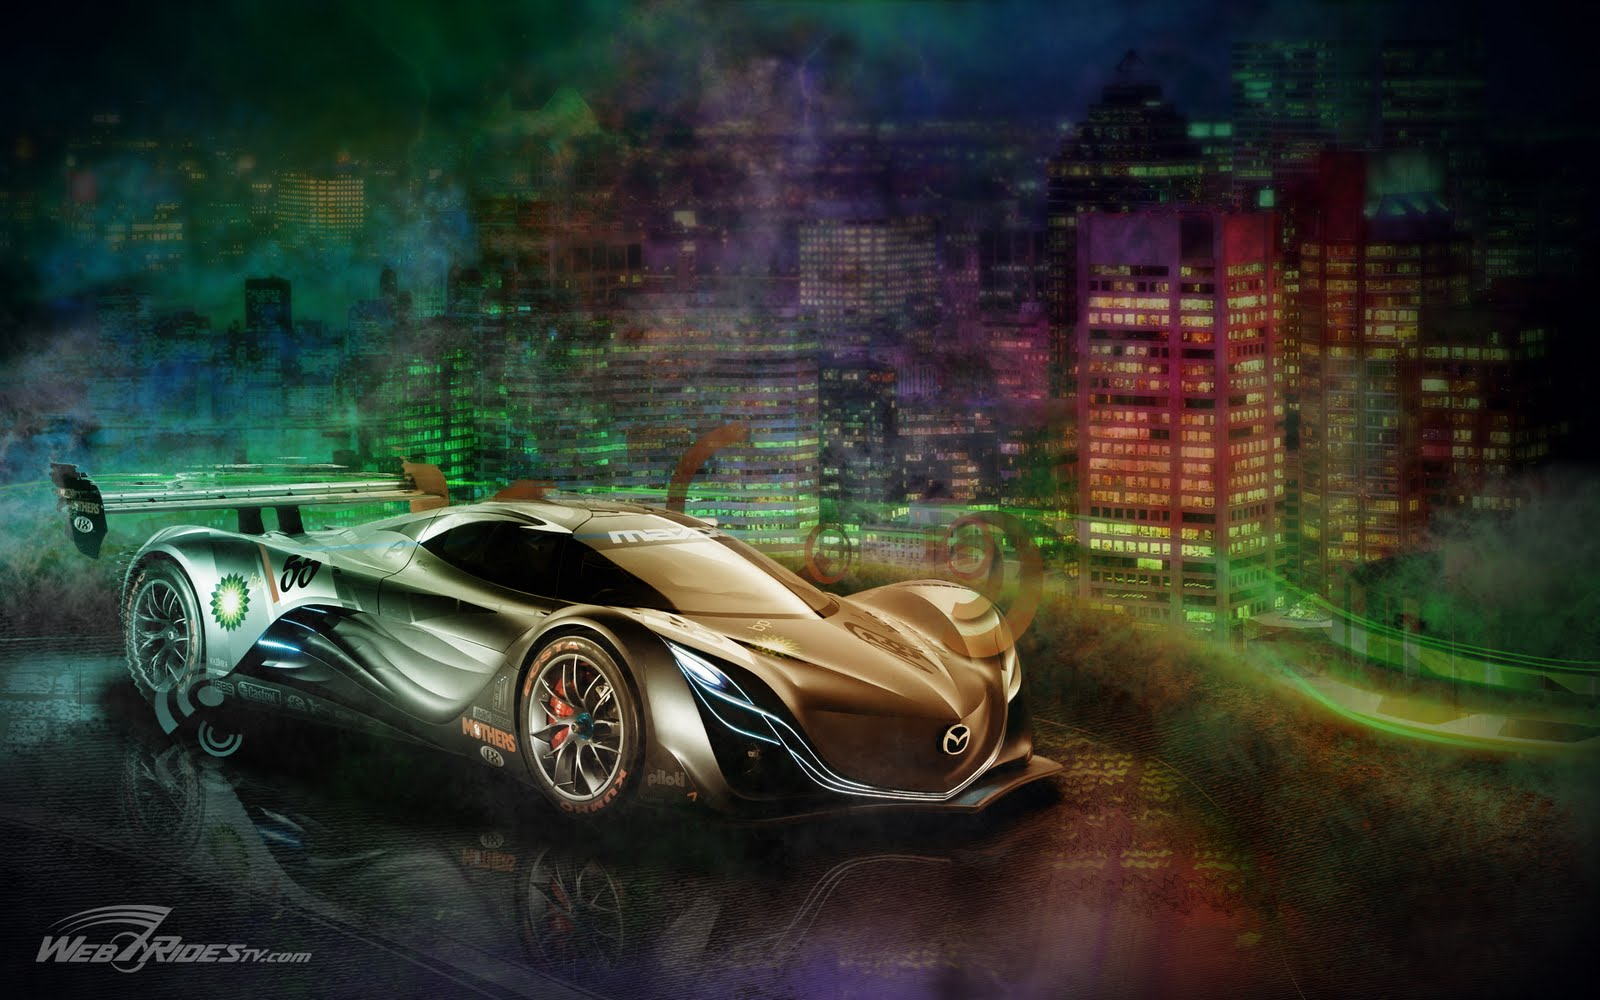 Concept car magazine cool car wallpapers - Mazda Furai Concept Car 1920x1200 High Definition Desktop Backgrounds